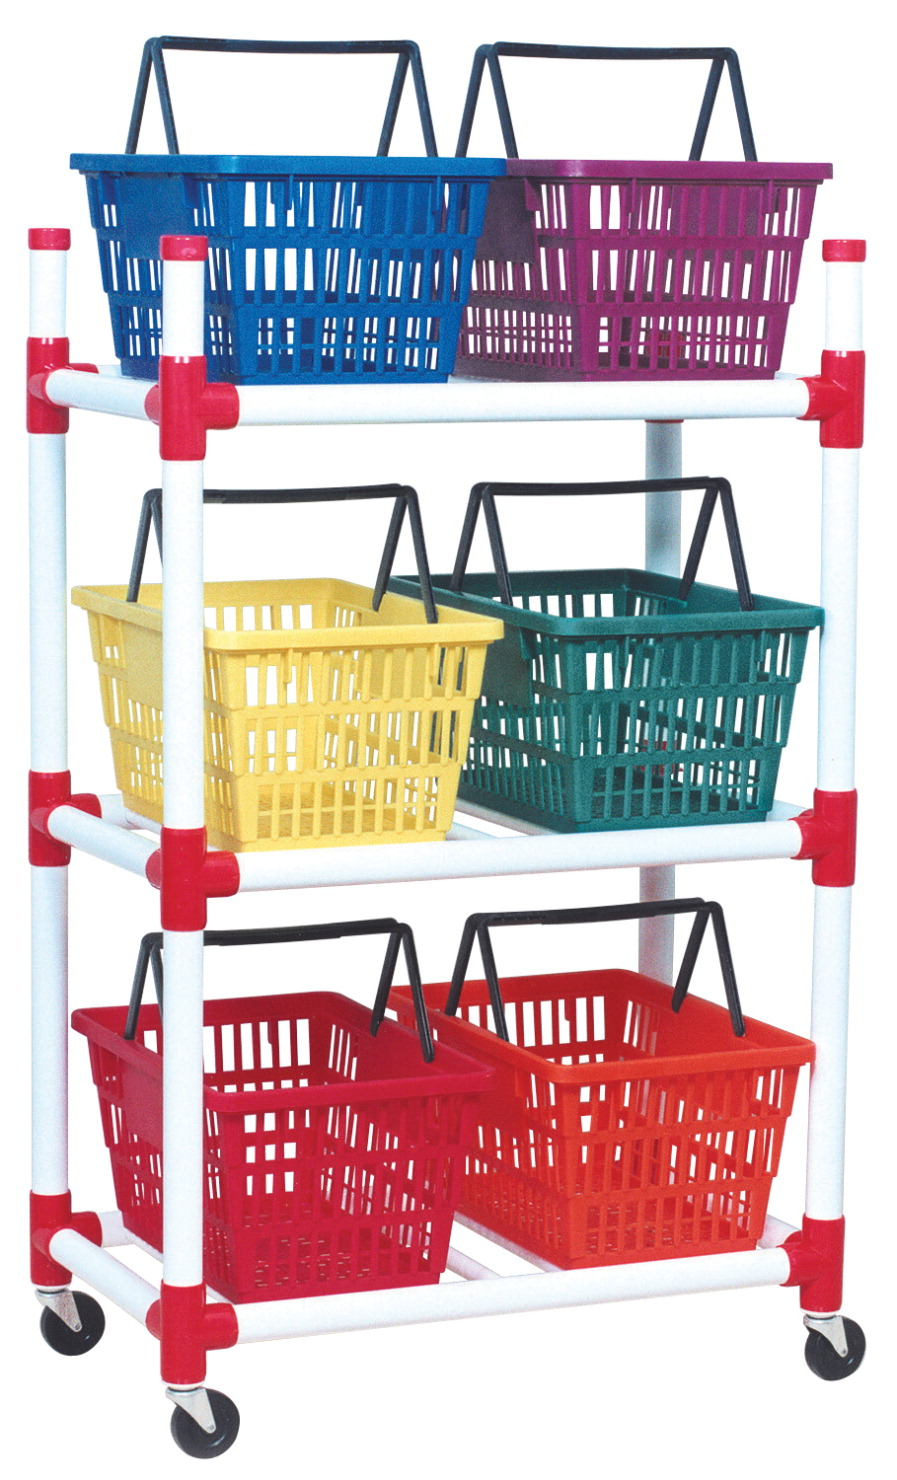 Duracart Multi-Purpose Rolling Cart with 6 Colorful Baskets, 33 Inches X 19 Inches X 52 Inches, Plastic, Assorted Color